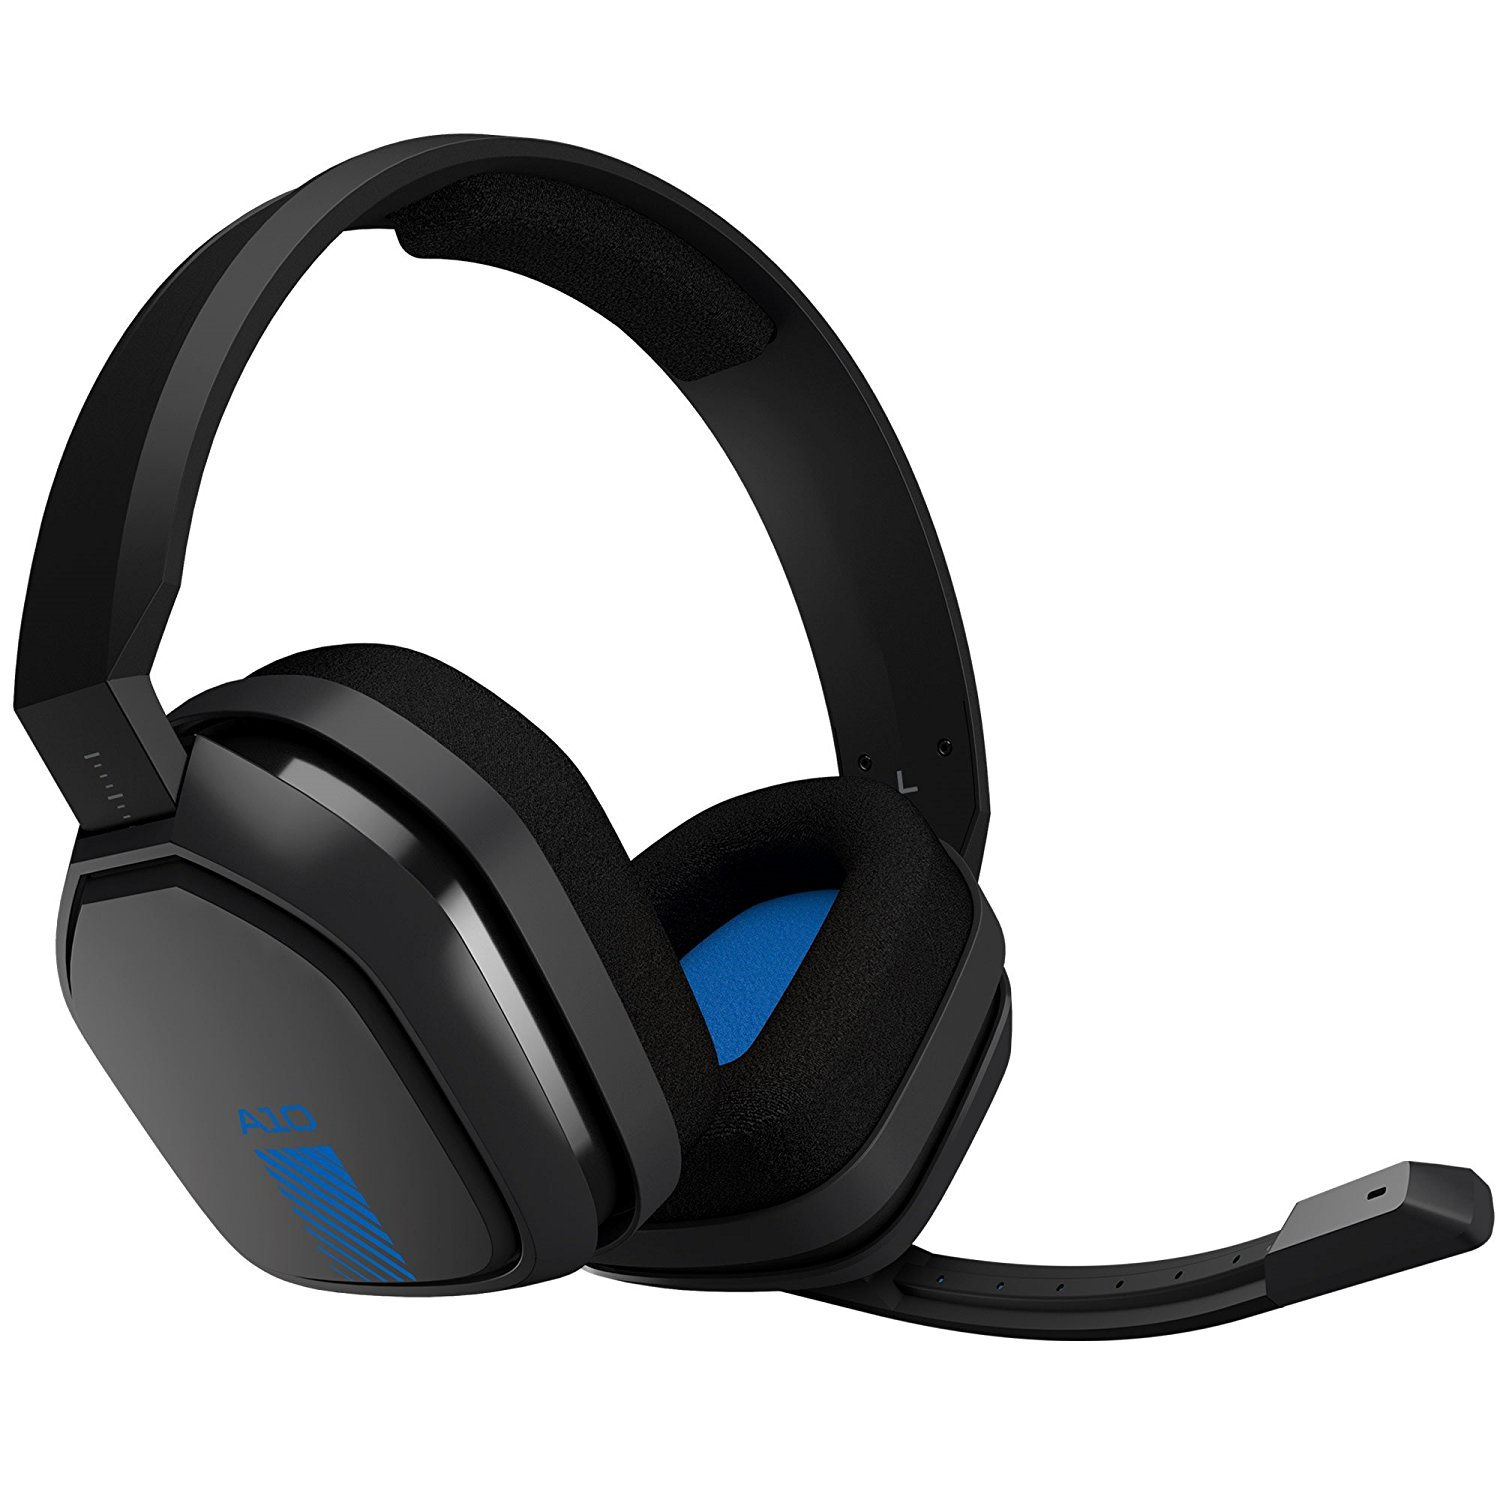 Refurbished Logitech Astro A10 Wired Gaming Pc Ps4 Headset W Boom Mic 3 5mm Gray Blue Walmart Com Walmart Com